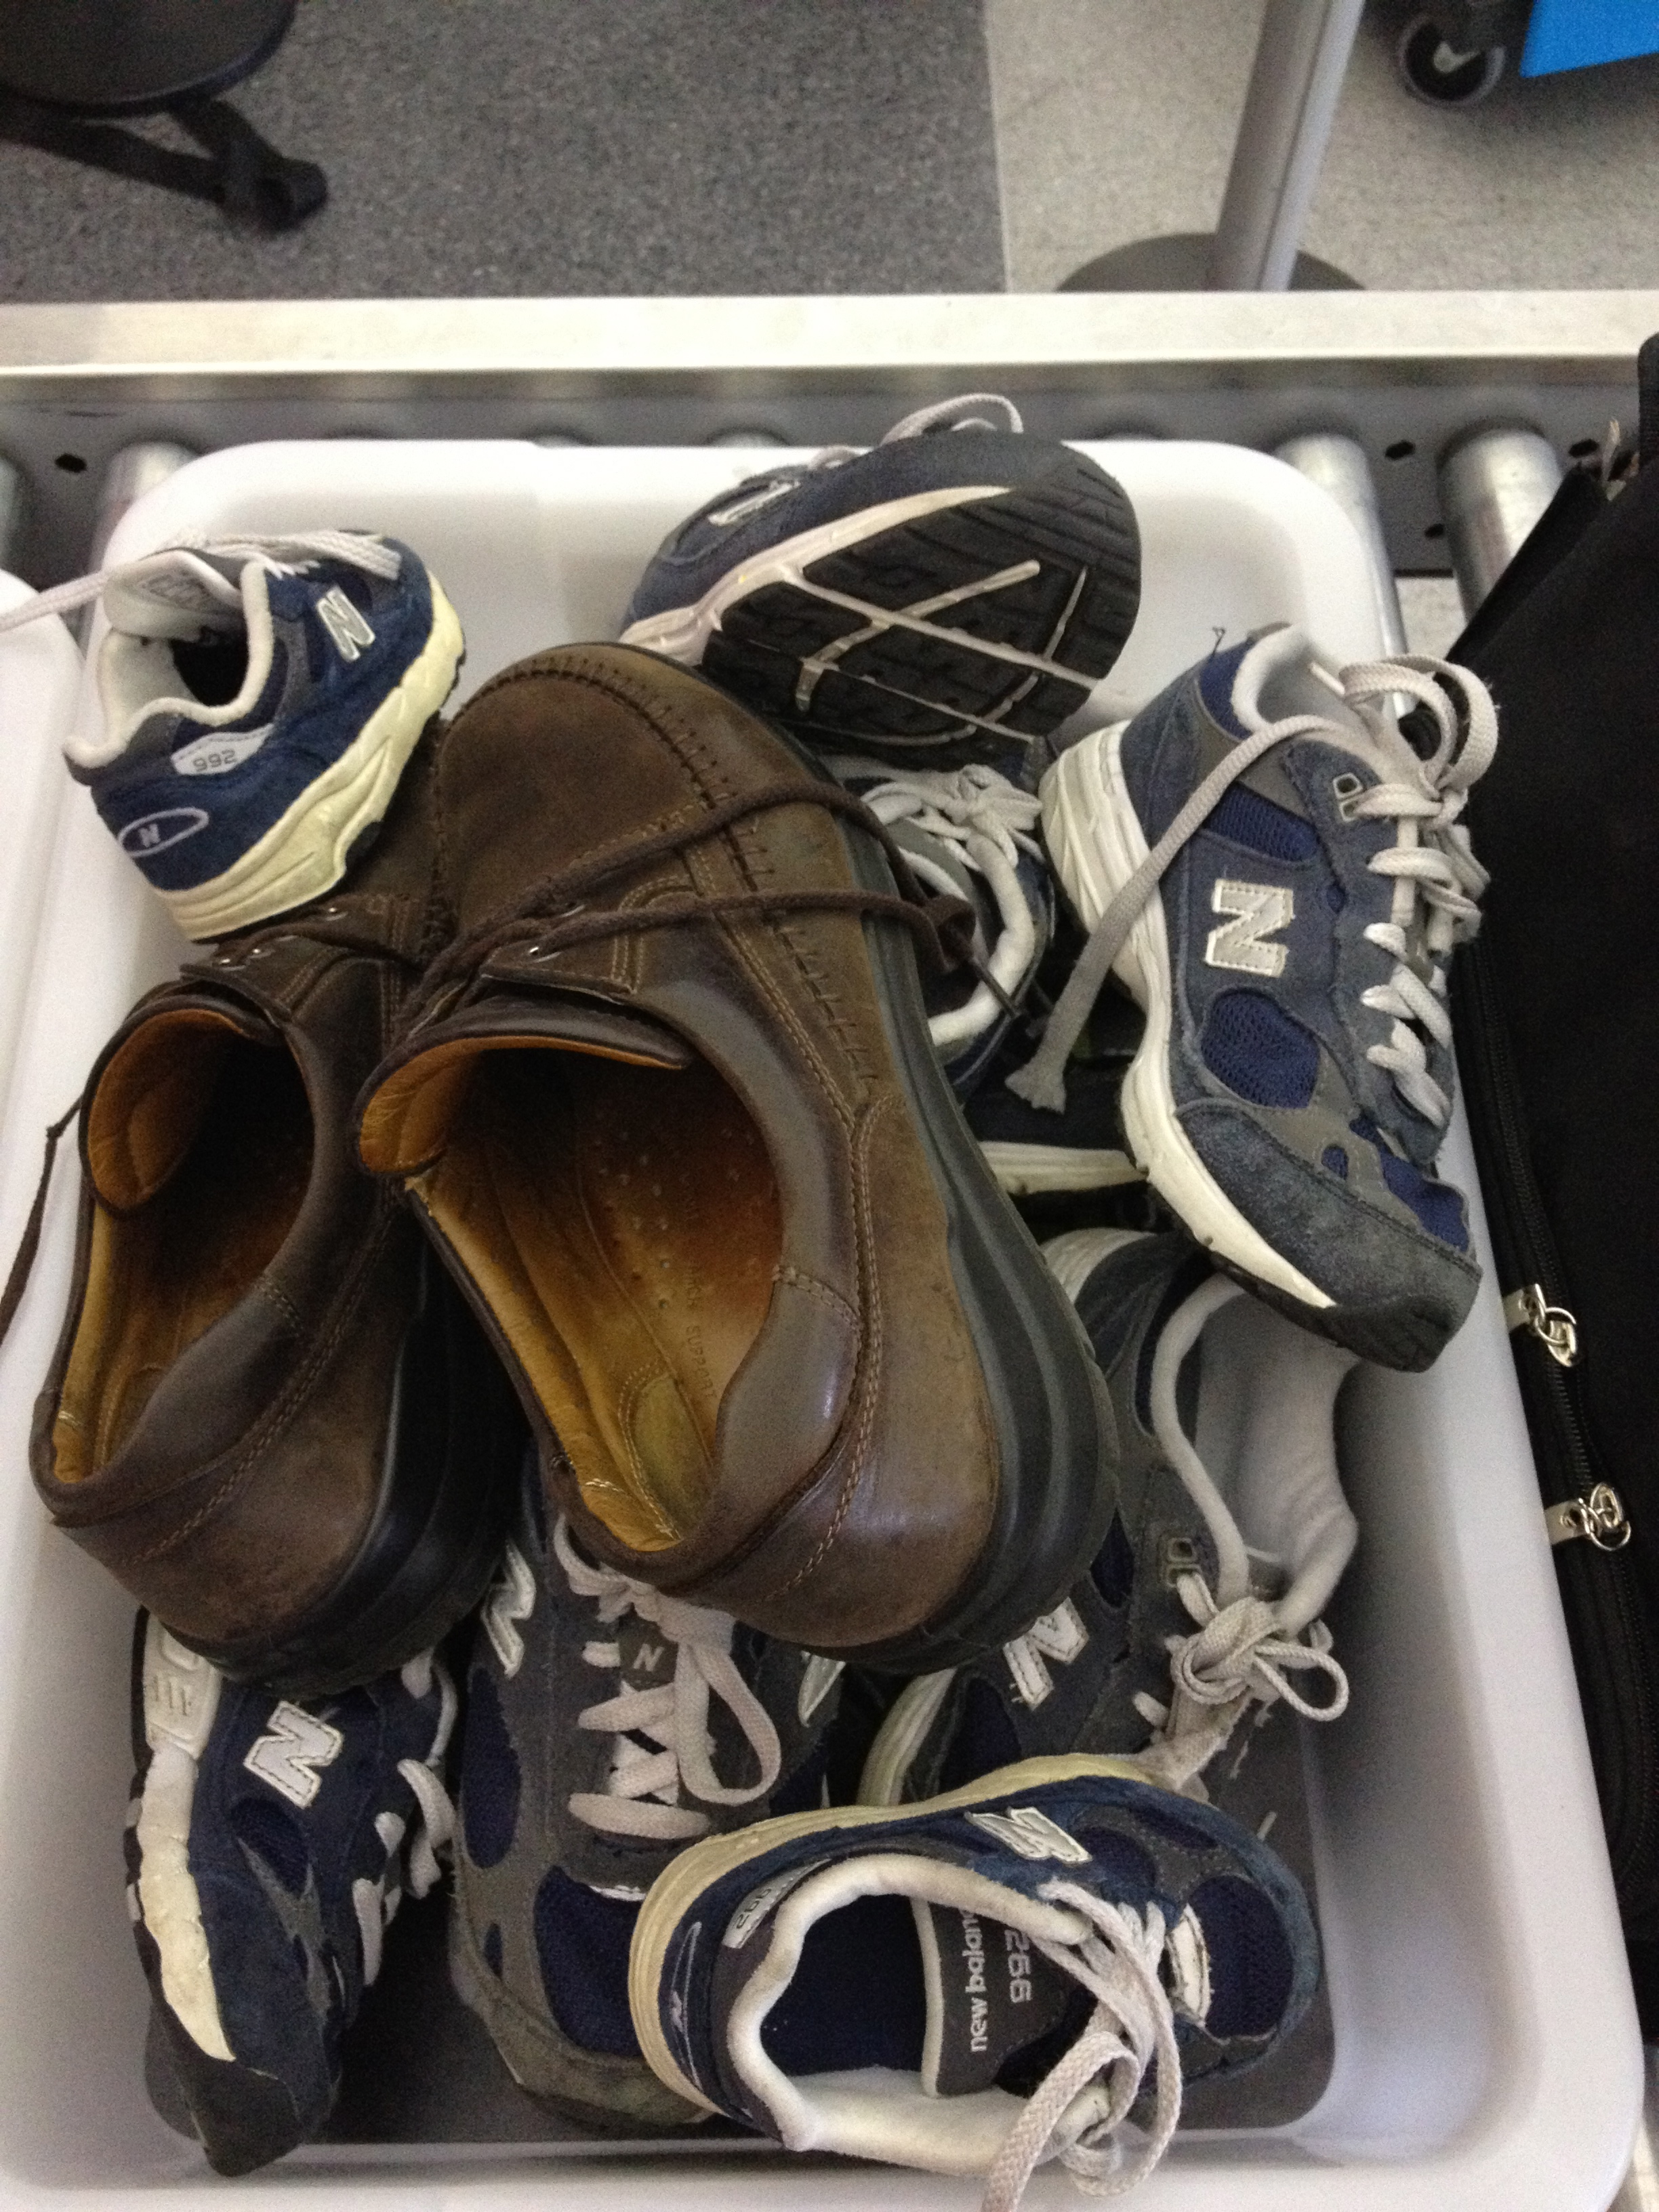 Shoes going through airport security.